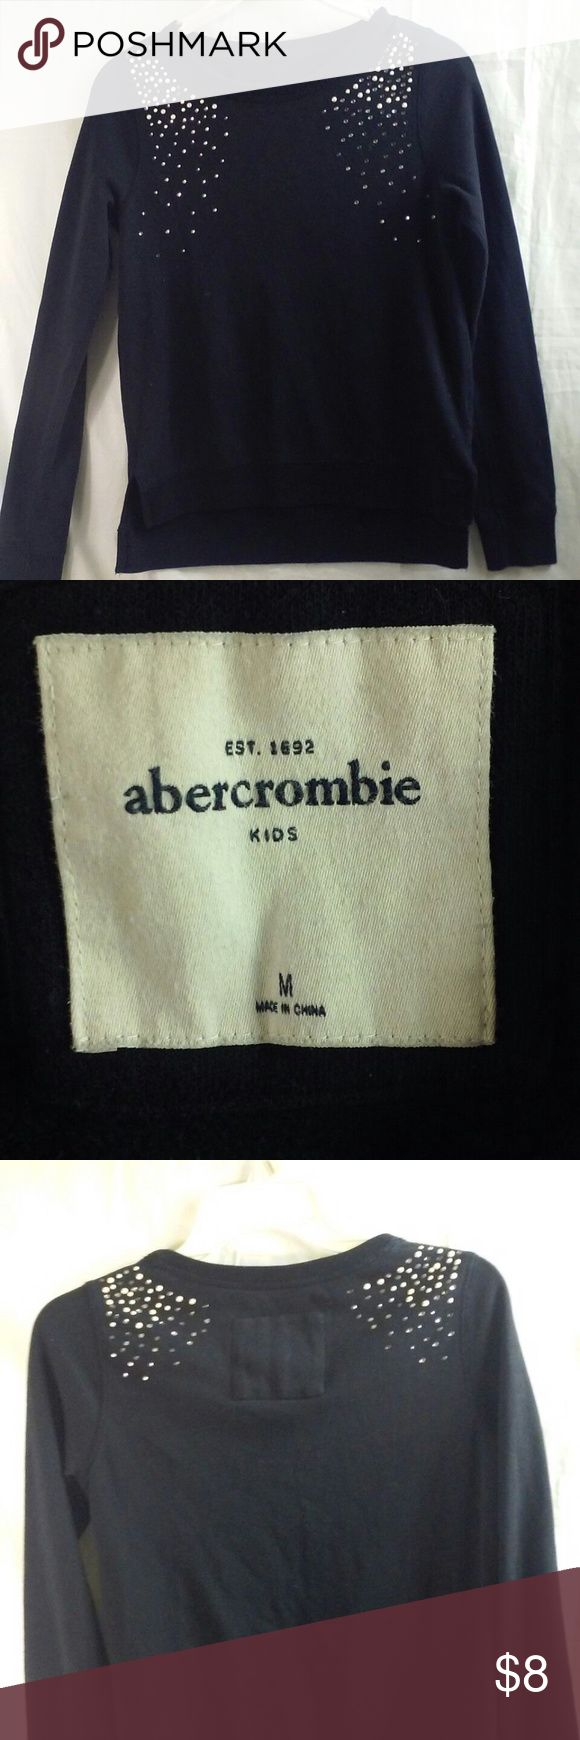 """Abercrombie Girls Black Knit Top Size Medium This is a pre-owned Abercrombie kids embellished knit top. Armpit to Armpit measures 16"""" Length from Shoulders to hem is 21"""" Arm length from Shoulder seam to cuffs is 22.5"""" Shoulders is 12.5"""" Has some missing rhinestones.  Don't hesitate to send offers, will accept any reasonable offer. abercrombie kids Shirts & Tops Tees - Long Sleeve"""